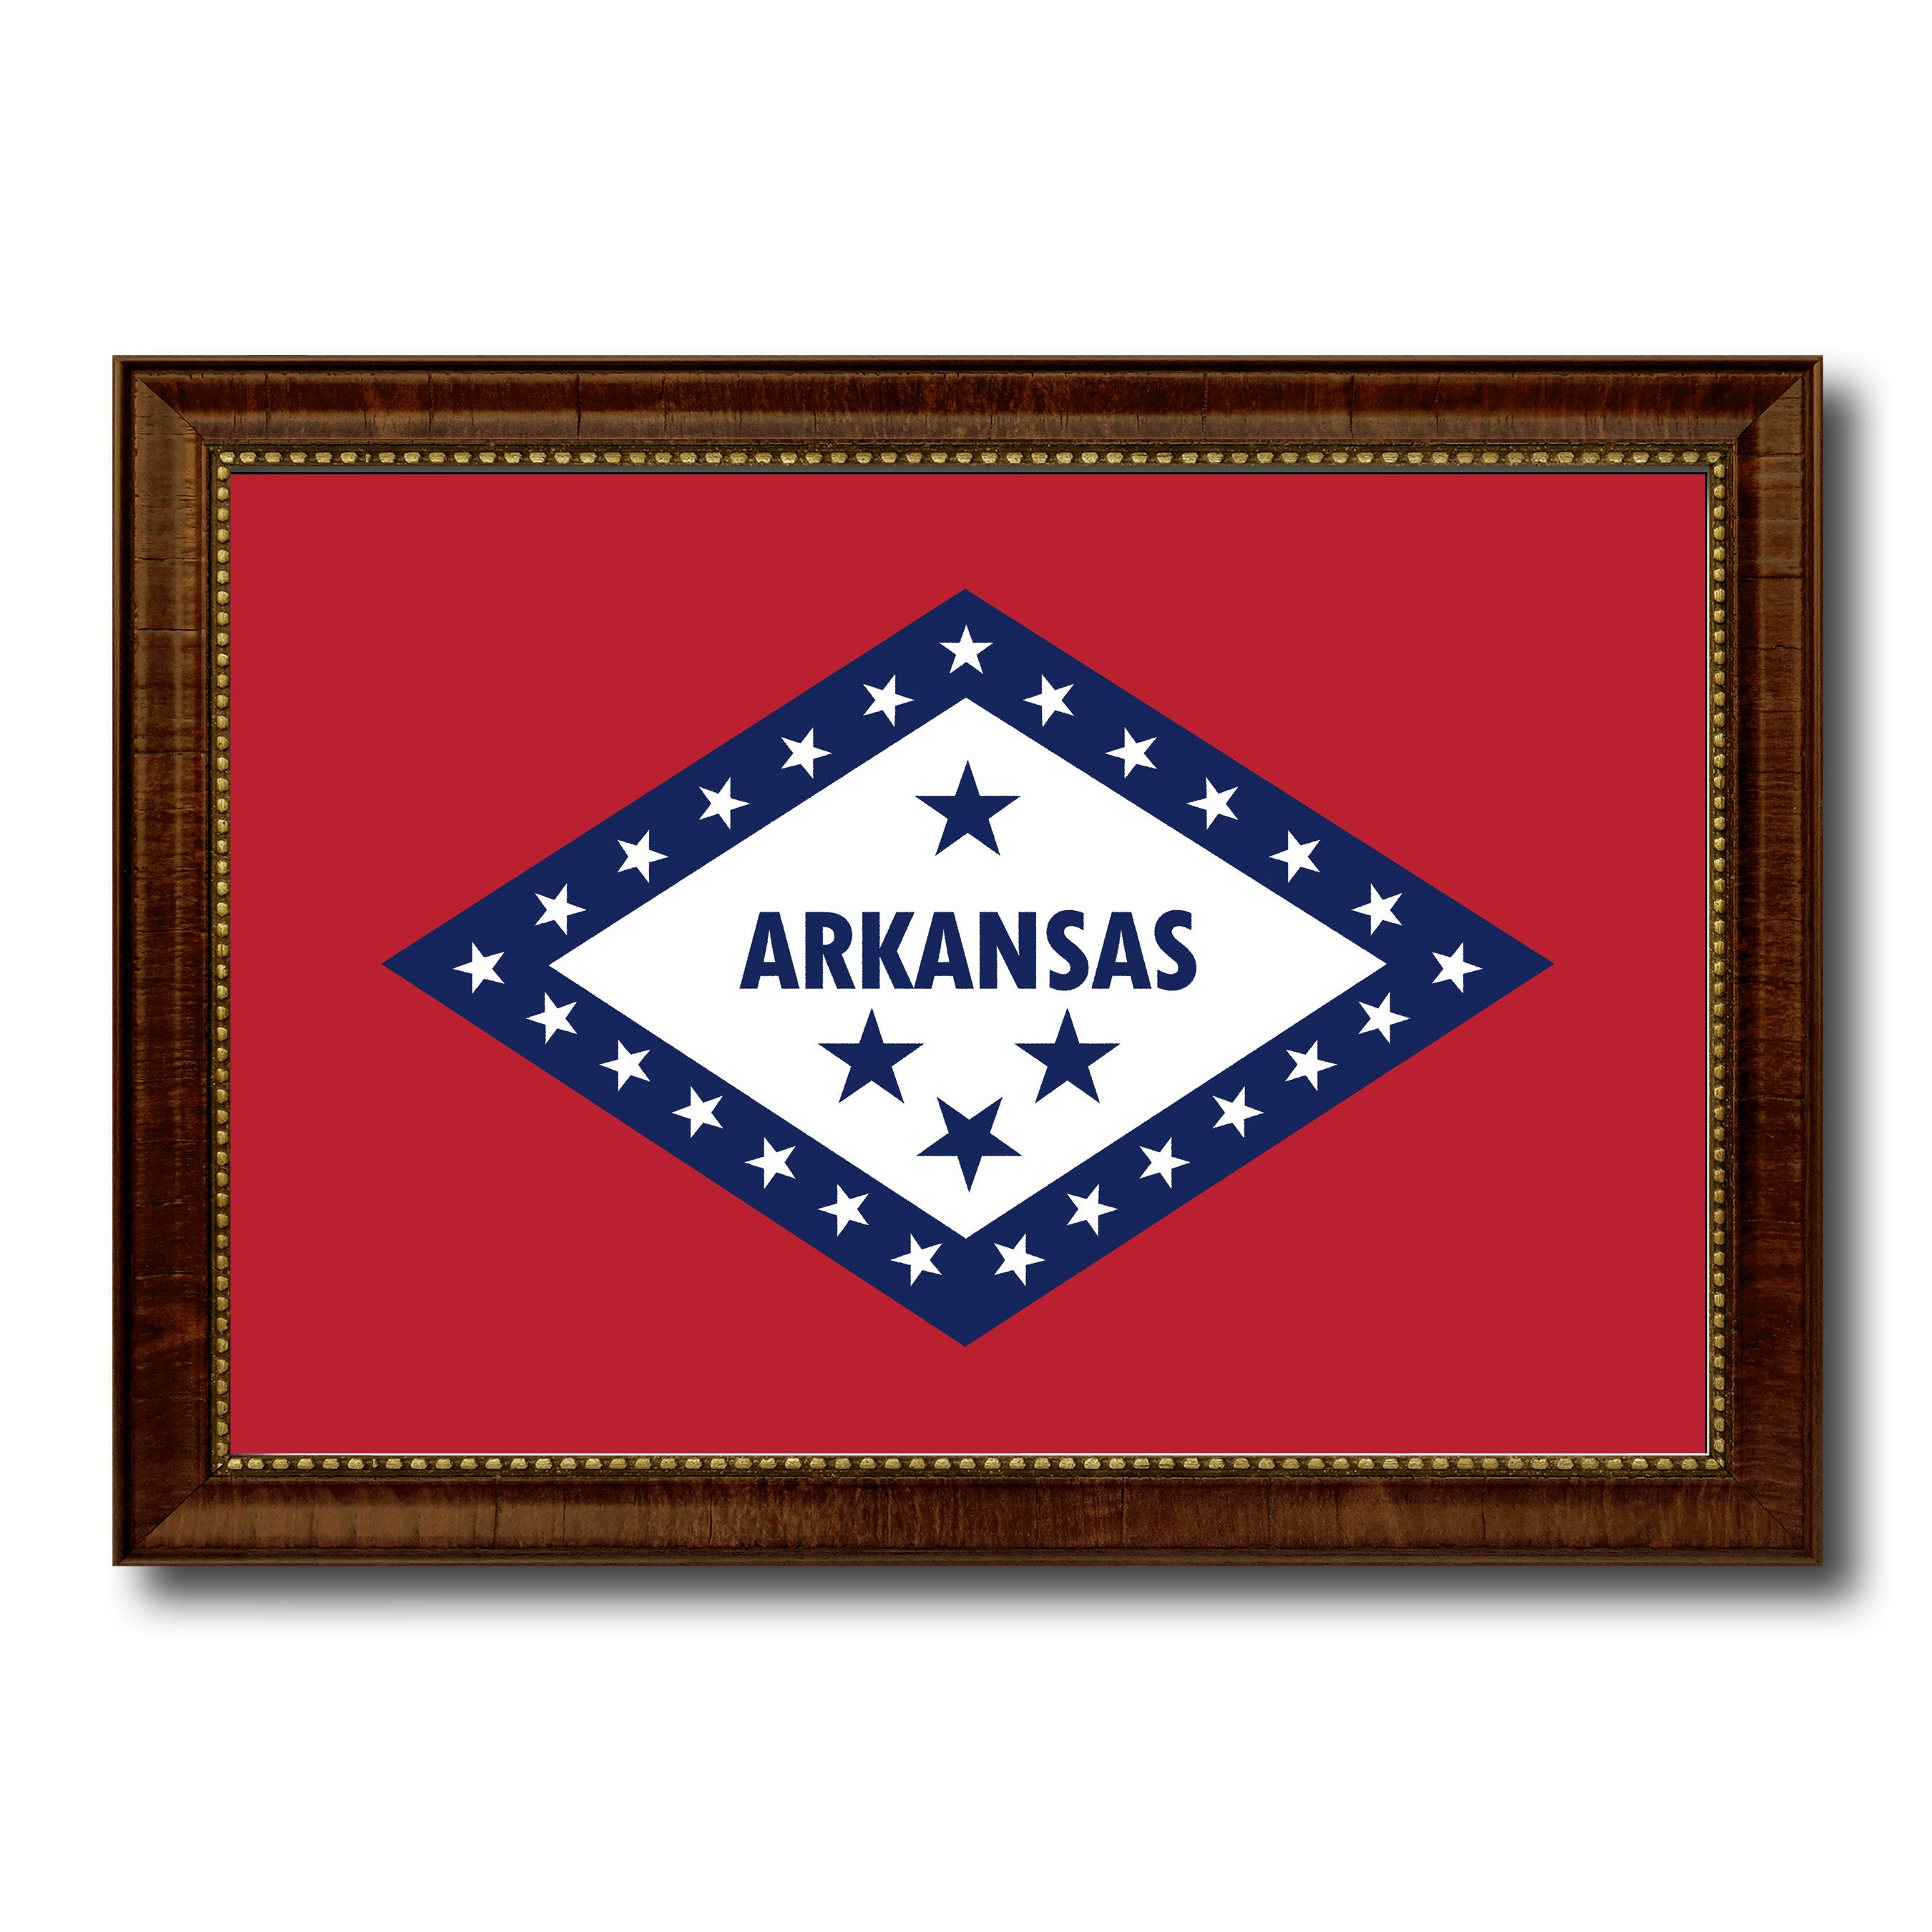 Arkansas State Flag Canvas Print with Custom Brown Picture Frame Home Decor Wall Art Decoration Gifts